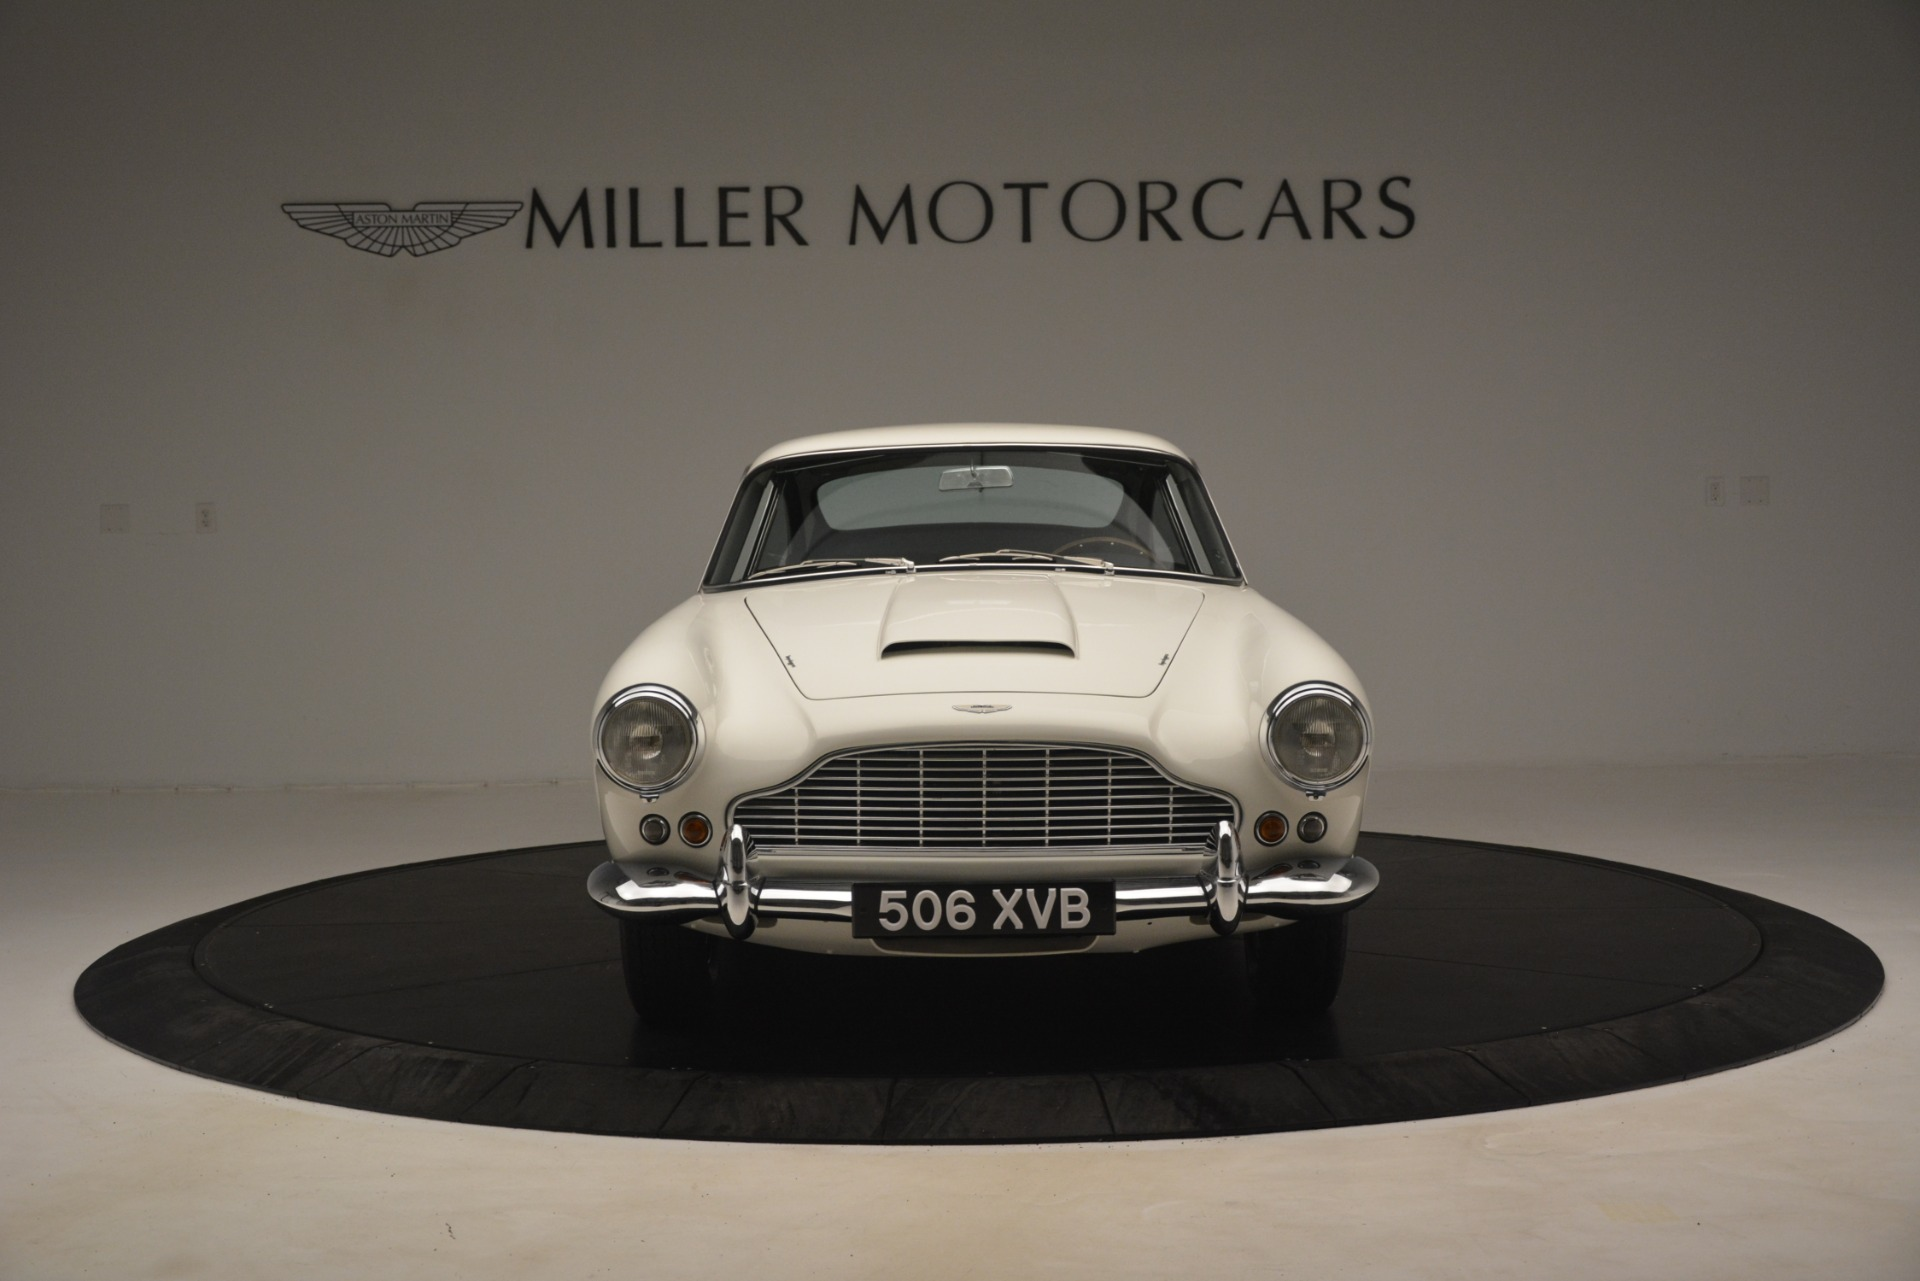 Pre Owned 1961 Aston Martin Db4 Series Iv Coupe For Sale 625 900 Miller Motorcars Stock 7567c